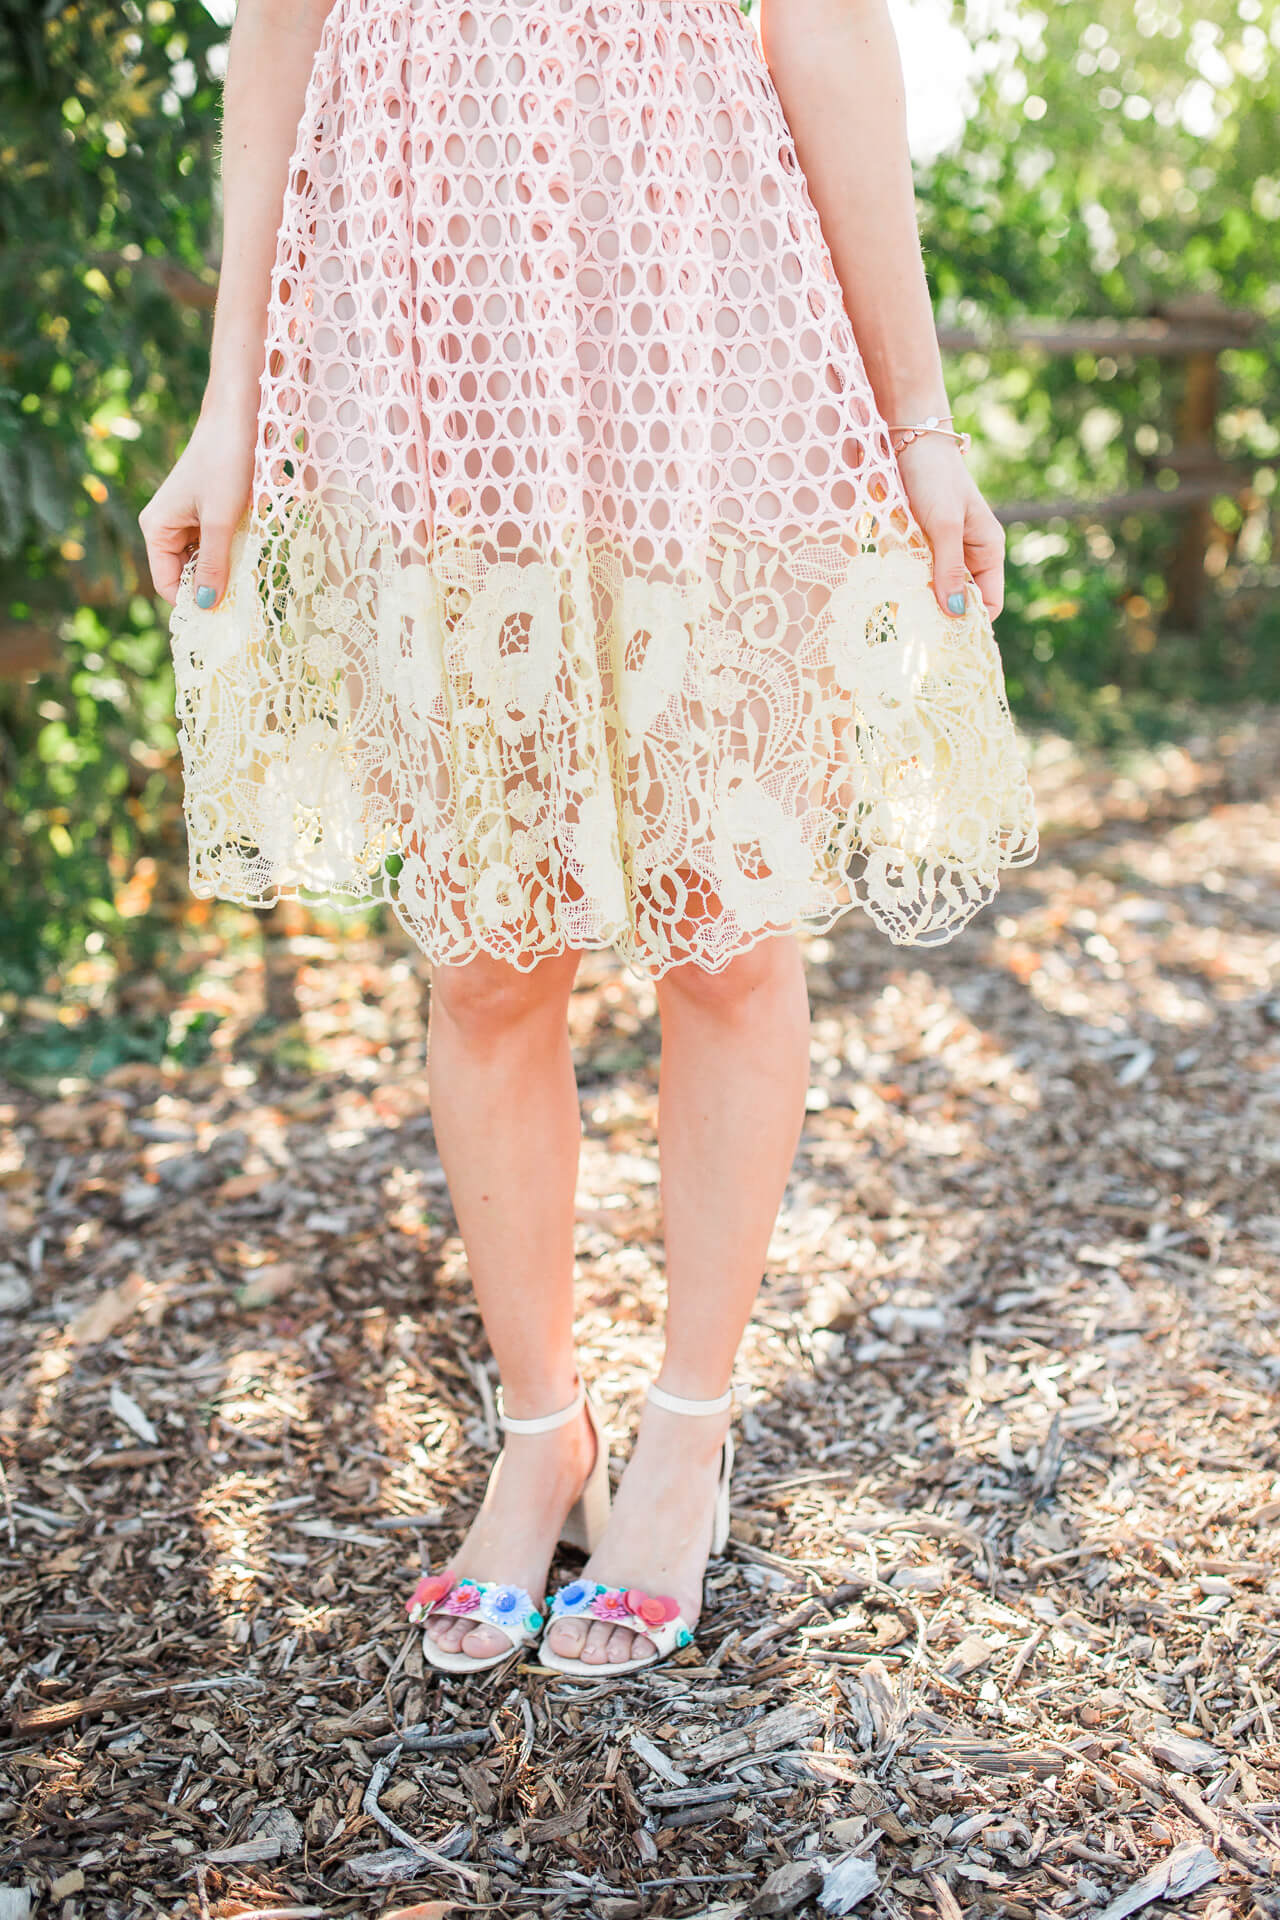 love the two-tone donna morgan dress with the floral applique kate spade sandal heels